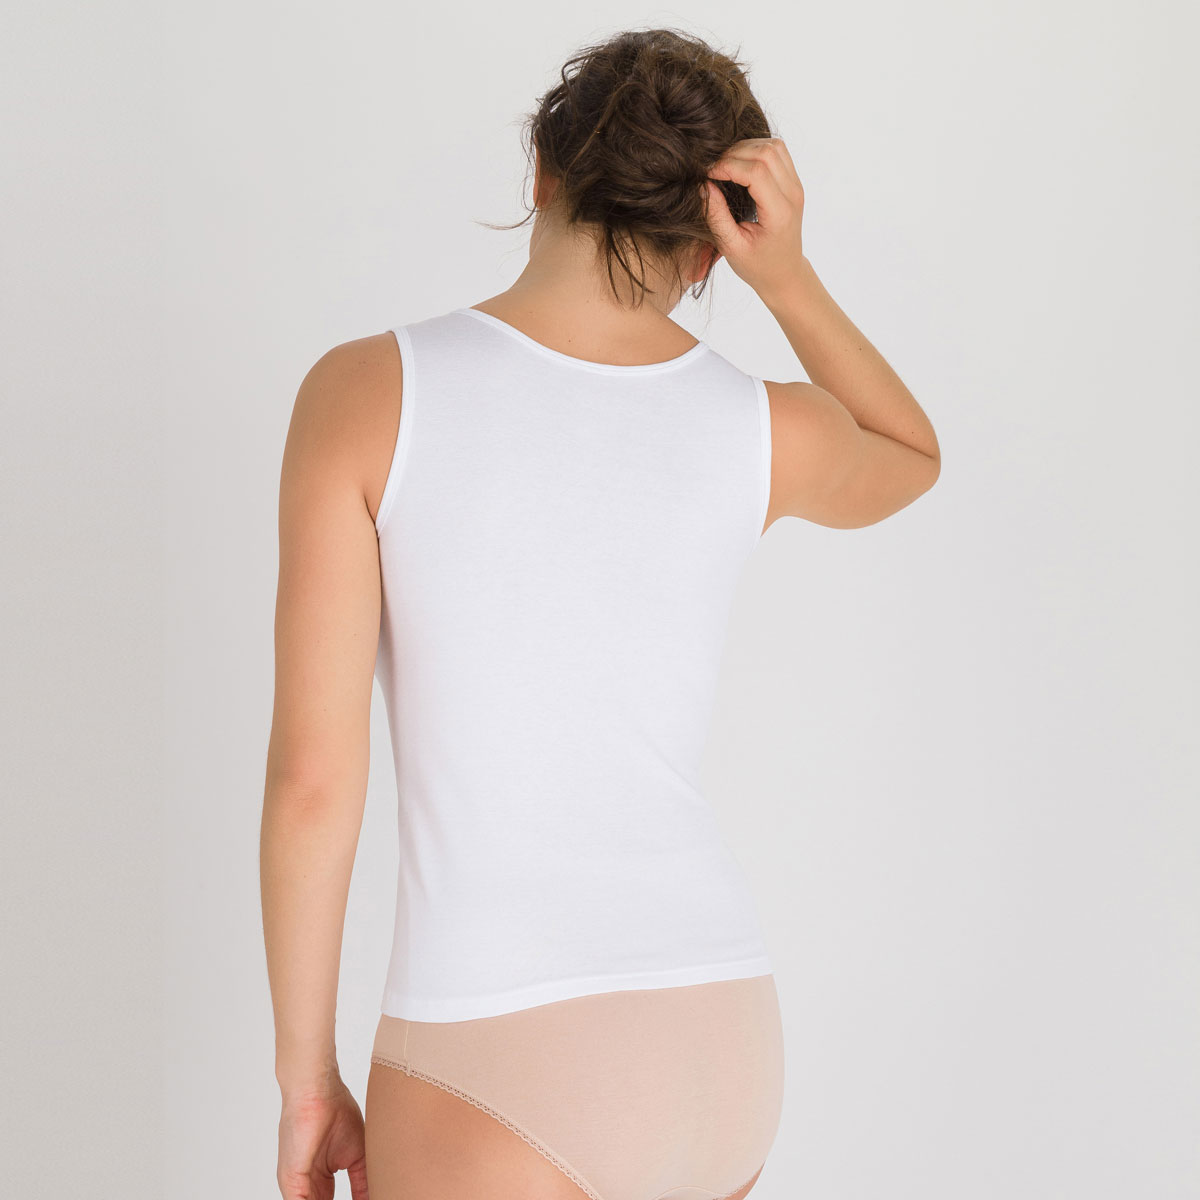 Tank top in White - Cotton Liberty-PLAYTEX